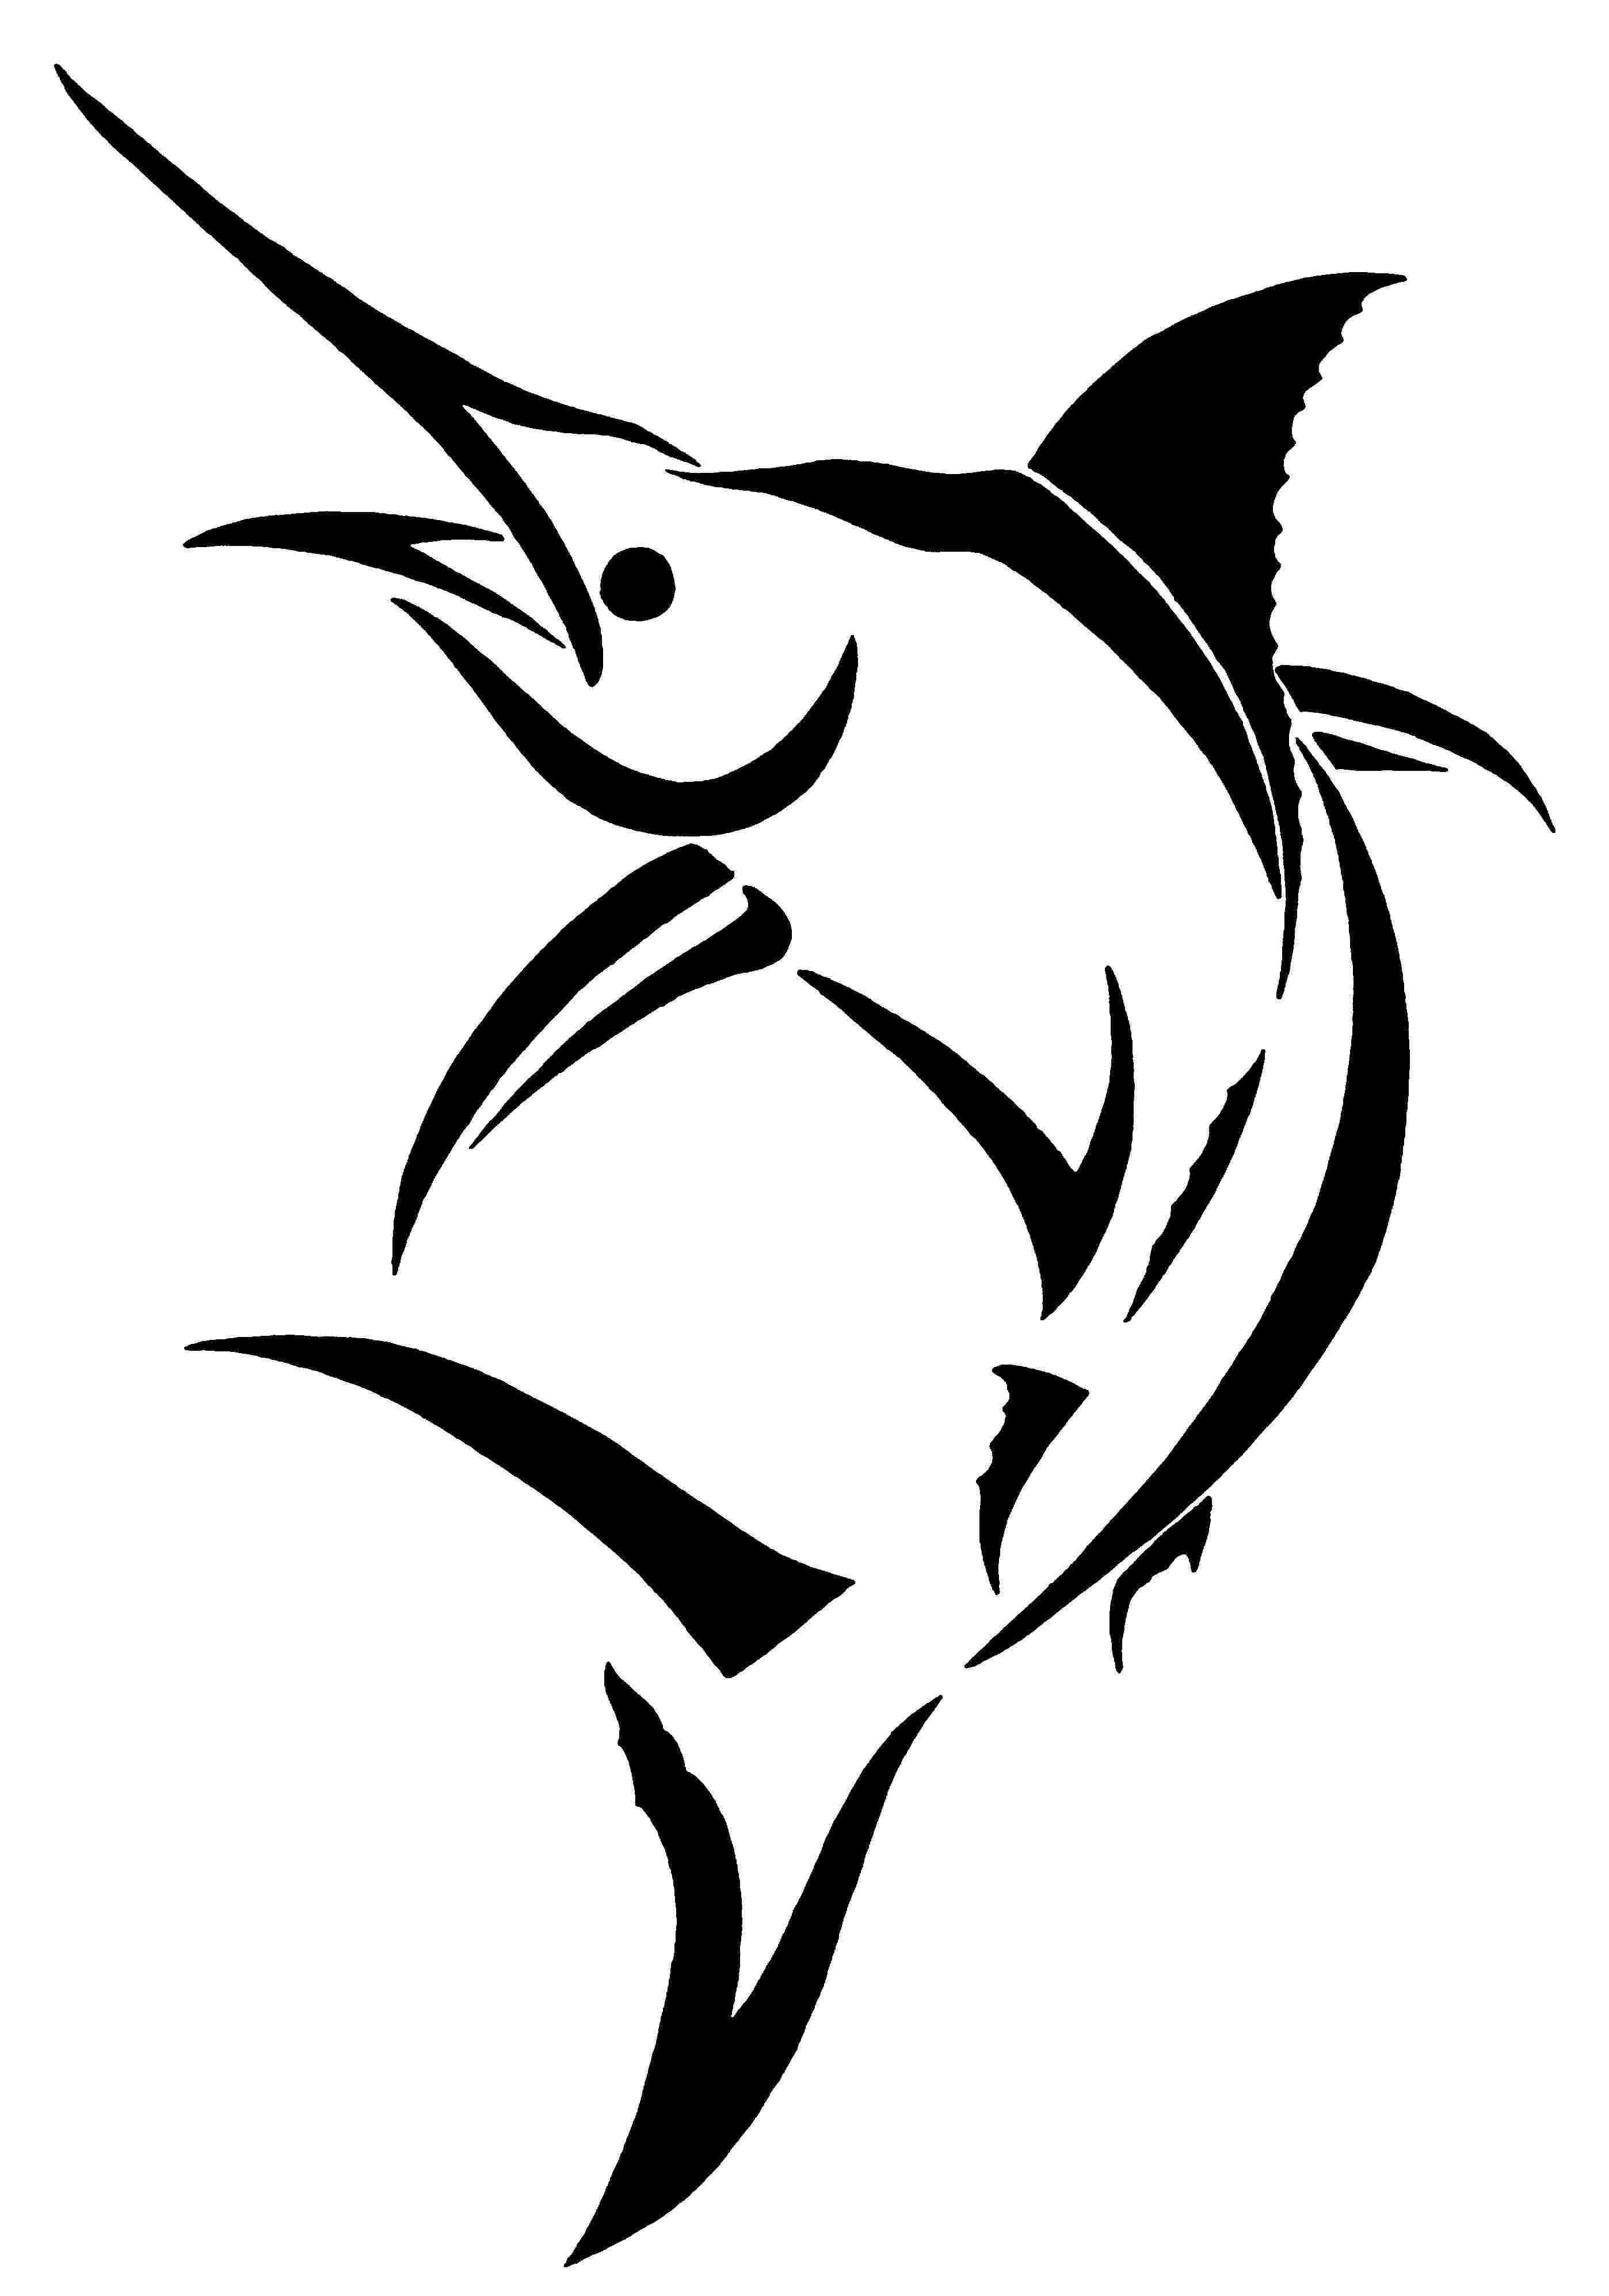 Sailfish Clipart - Tumundografico